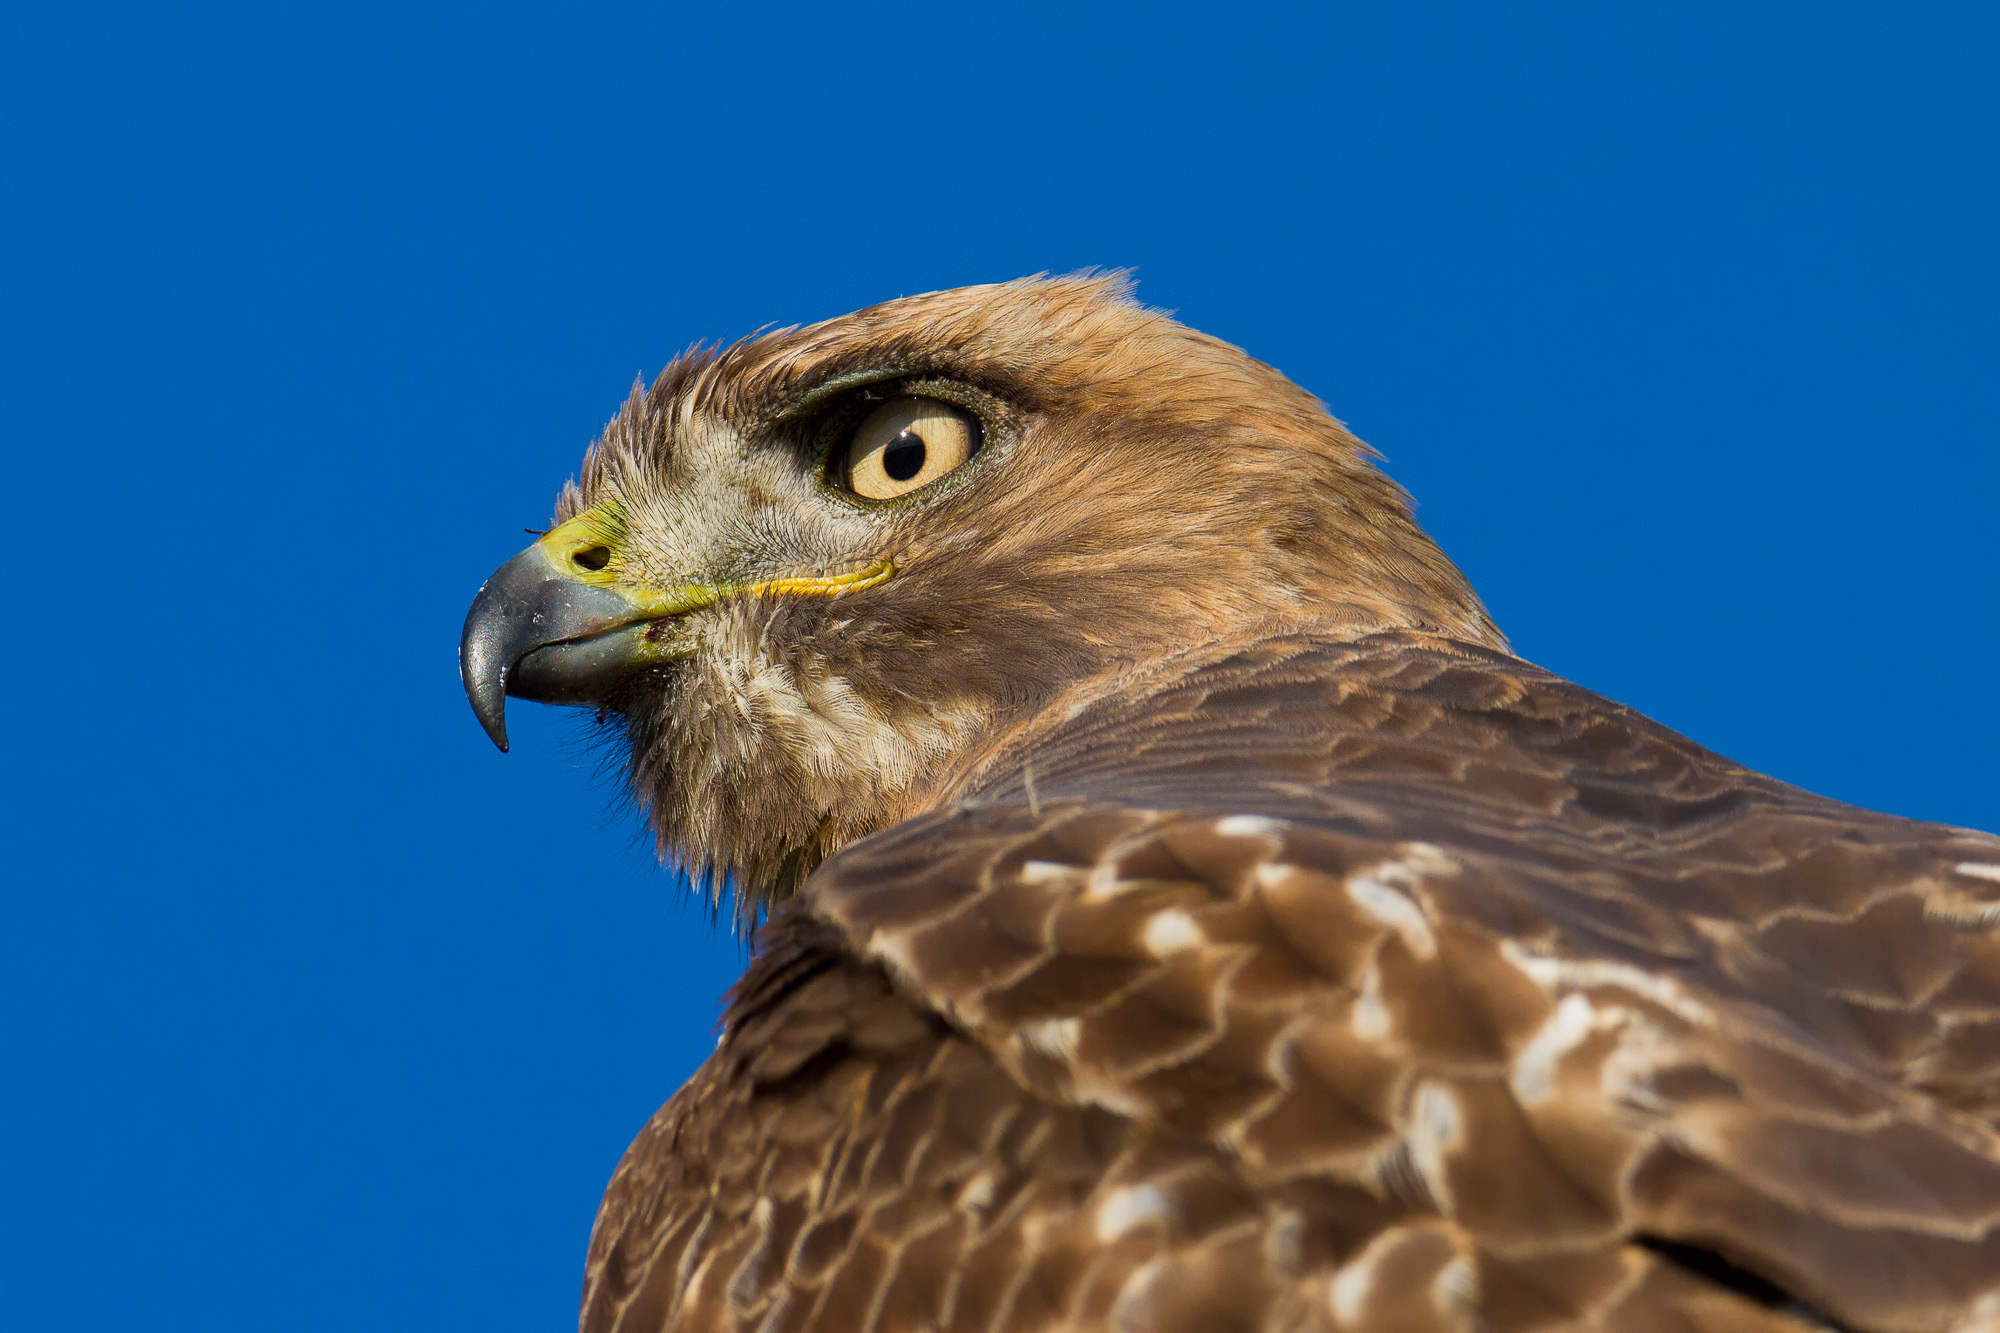 An immature red-tailed hawk looks back over its shoulder